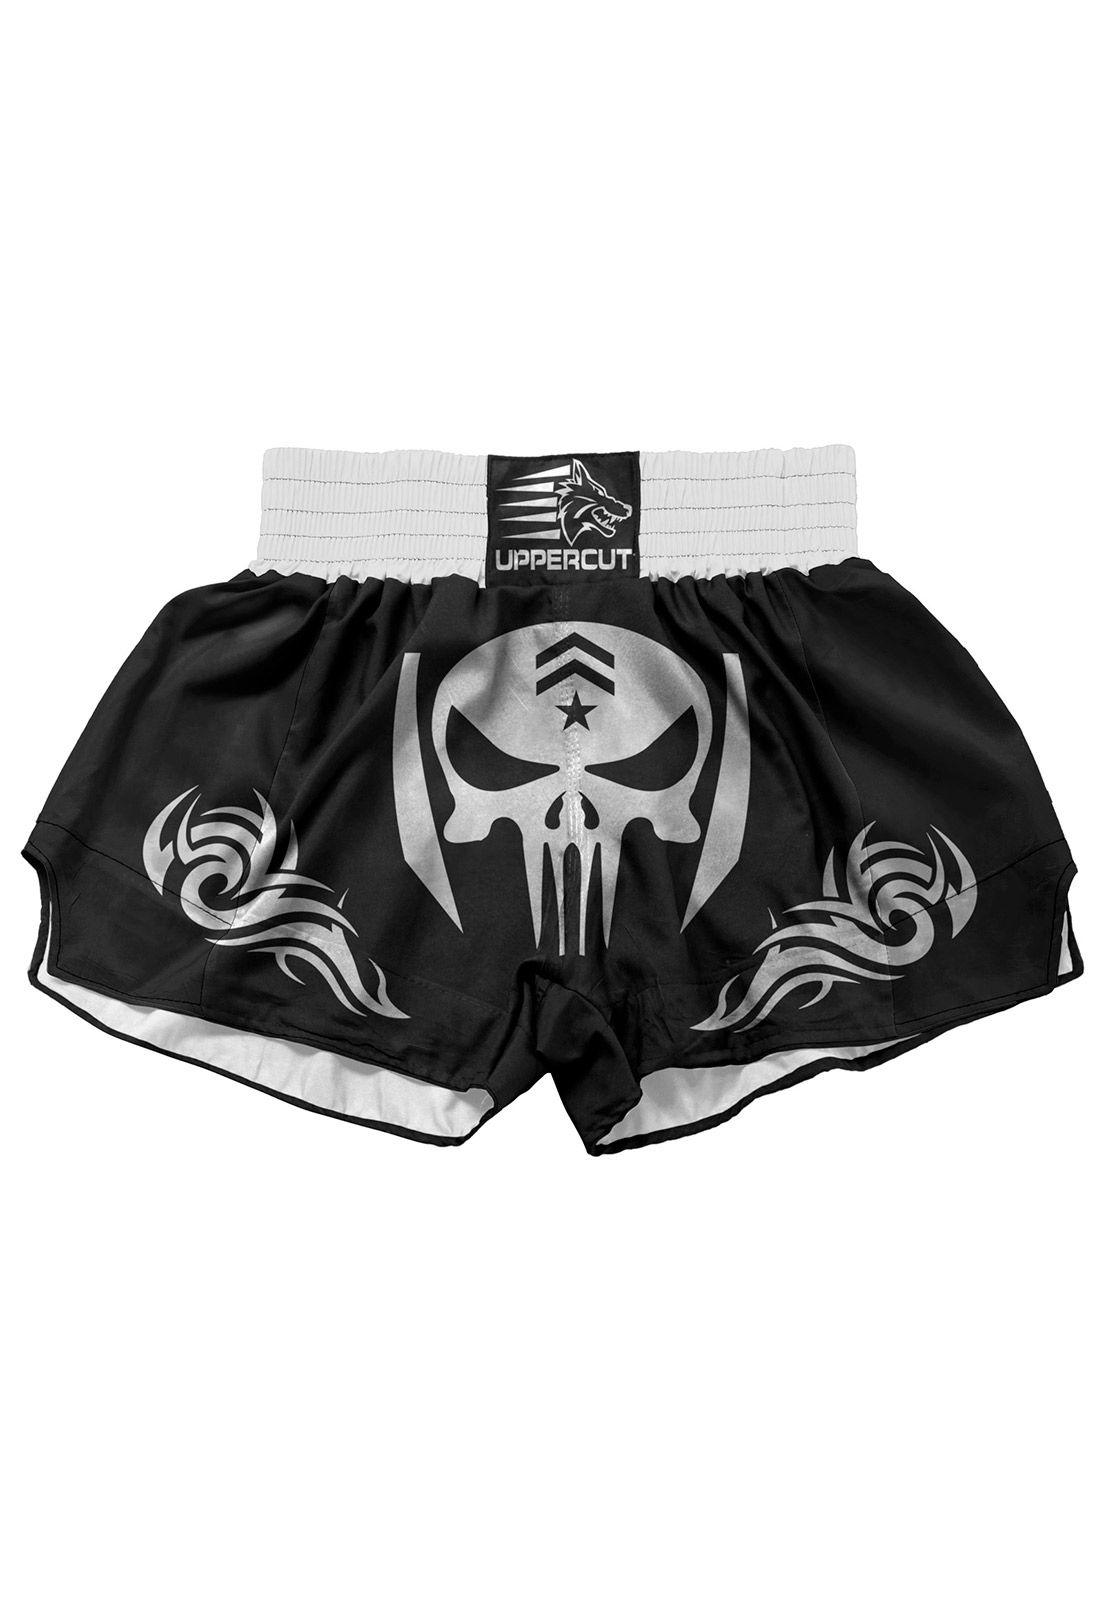 Short Muay Thai Kickboxing Caveira Tribal - Preto/Branco